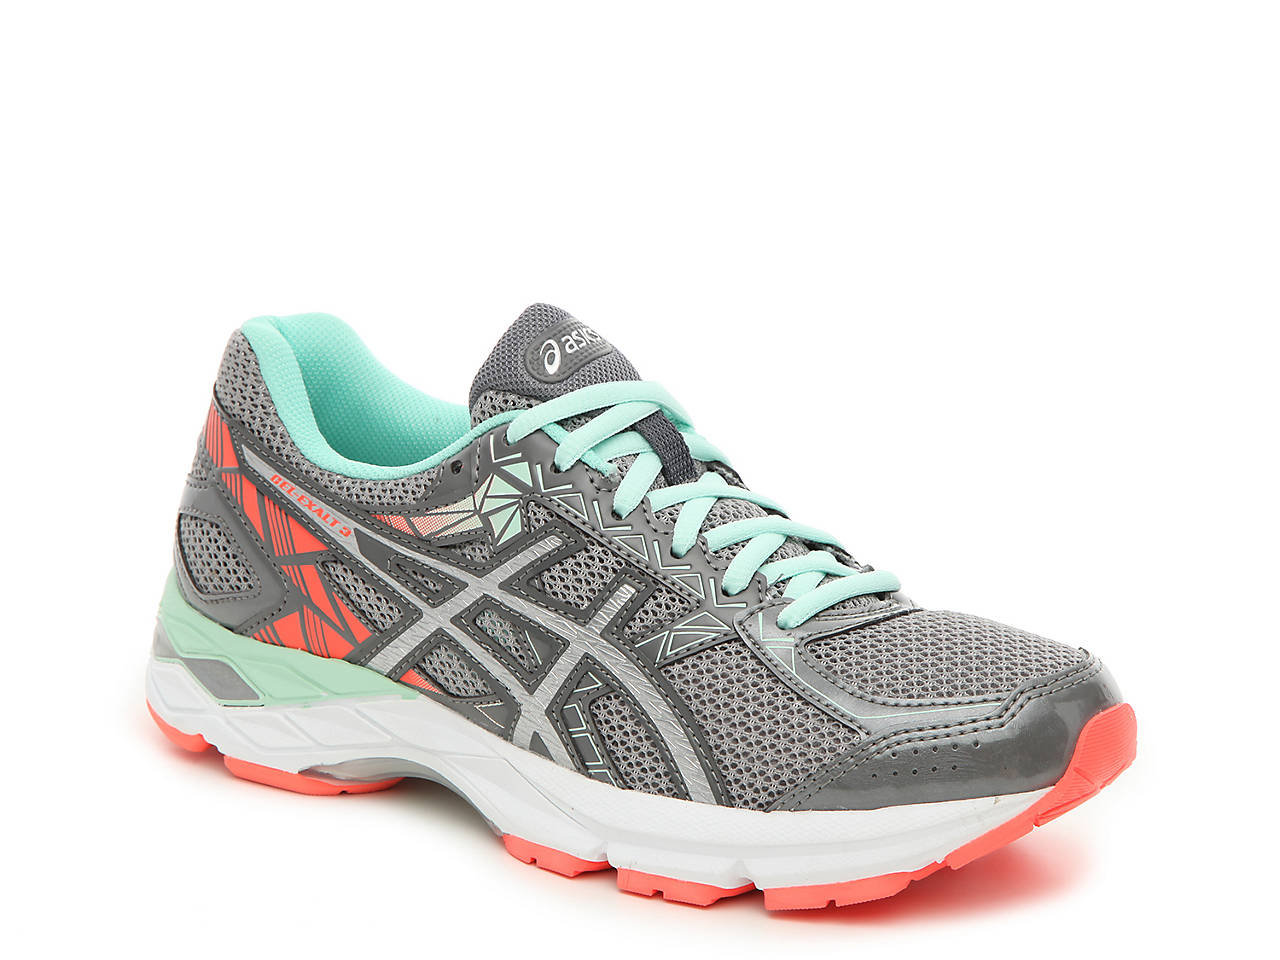 6e698b058a7d ASICS GEL-Exalt 3 Performance Running Shoe - Women s Women s Shoes